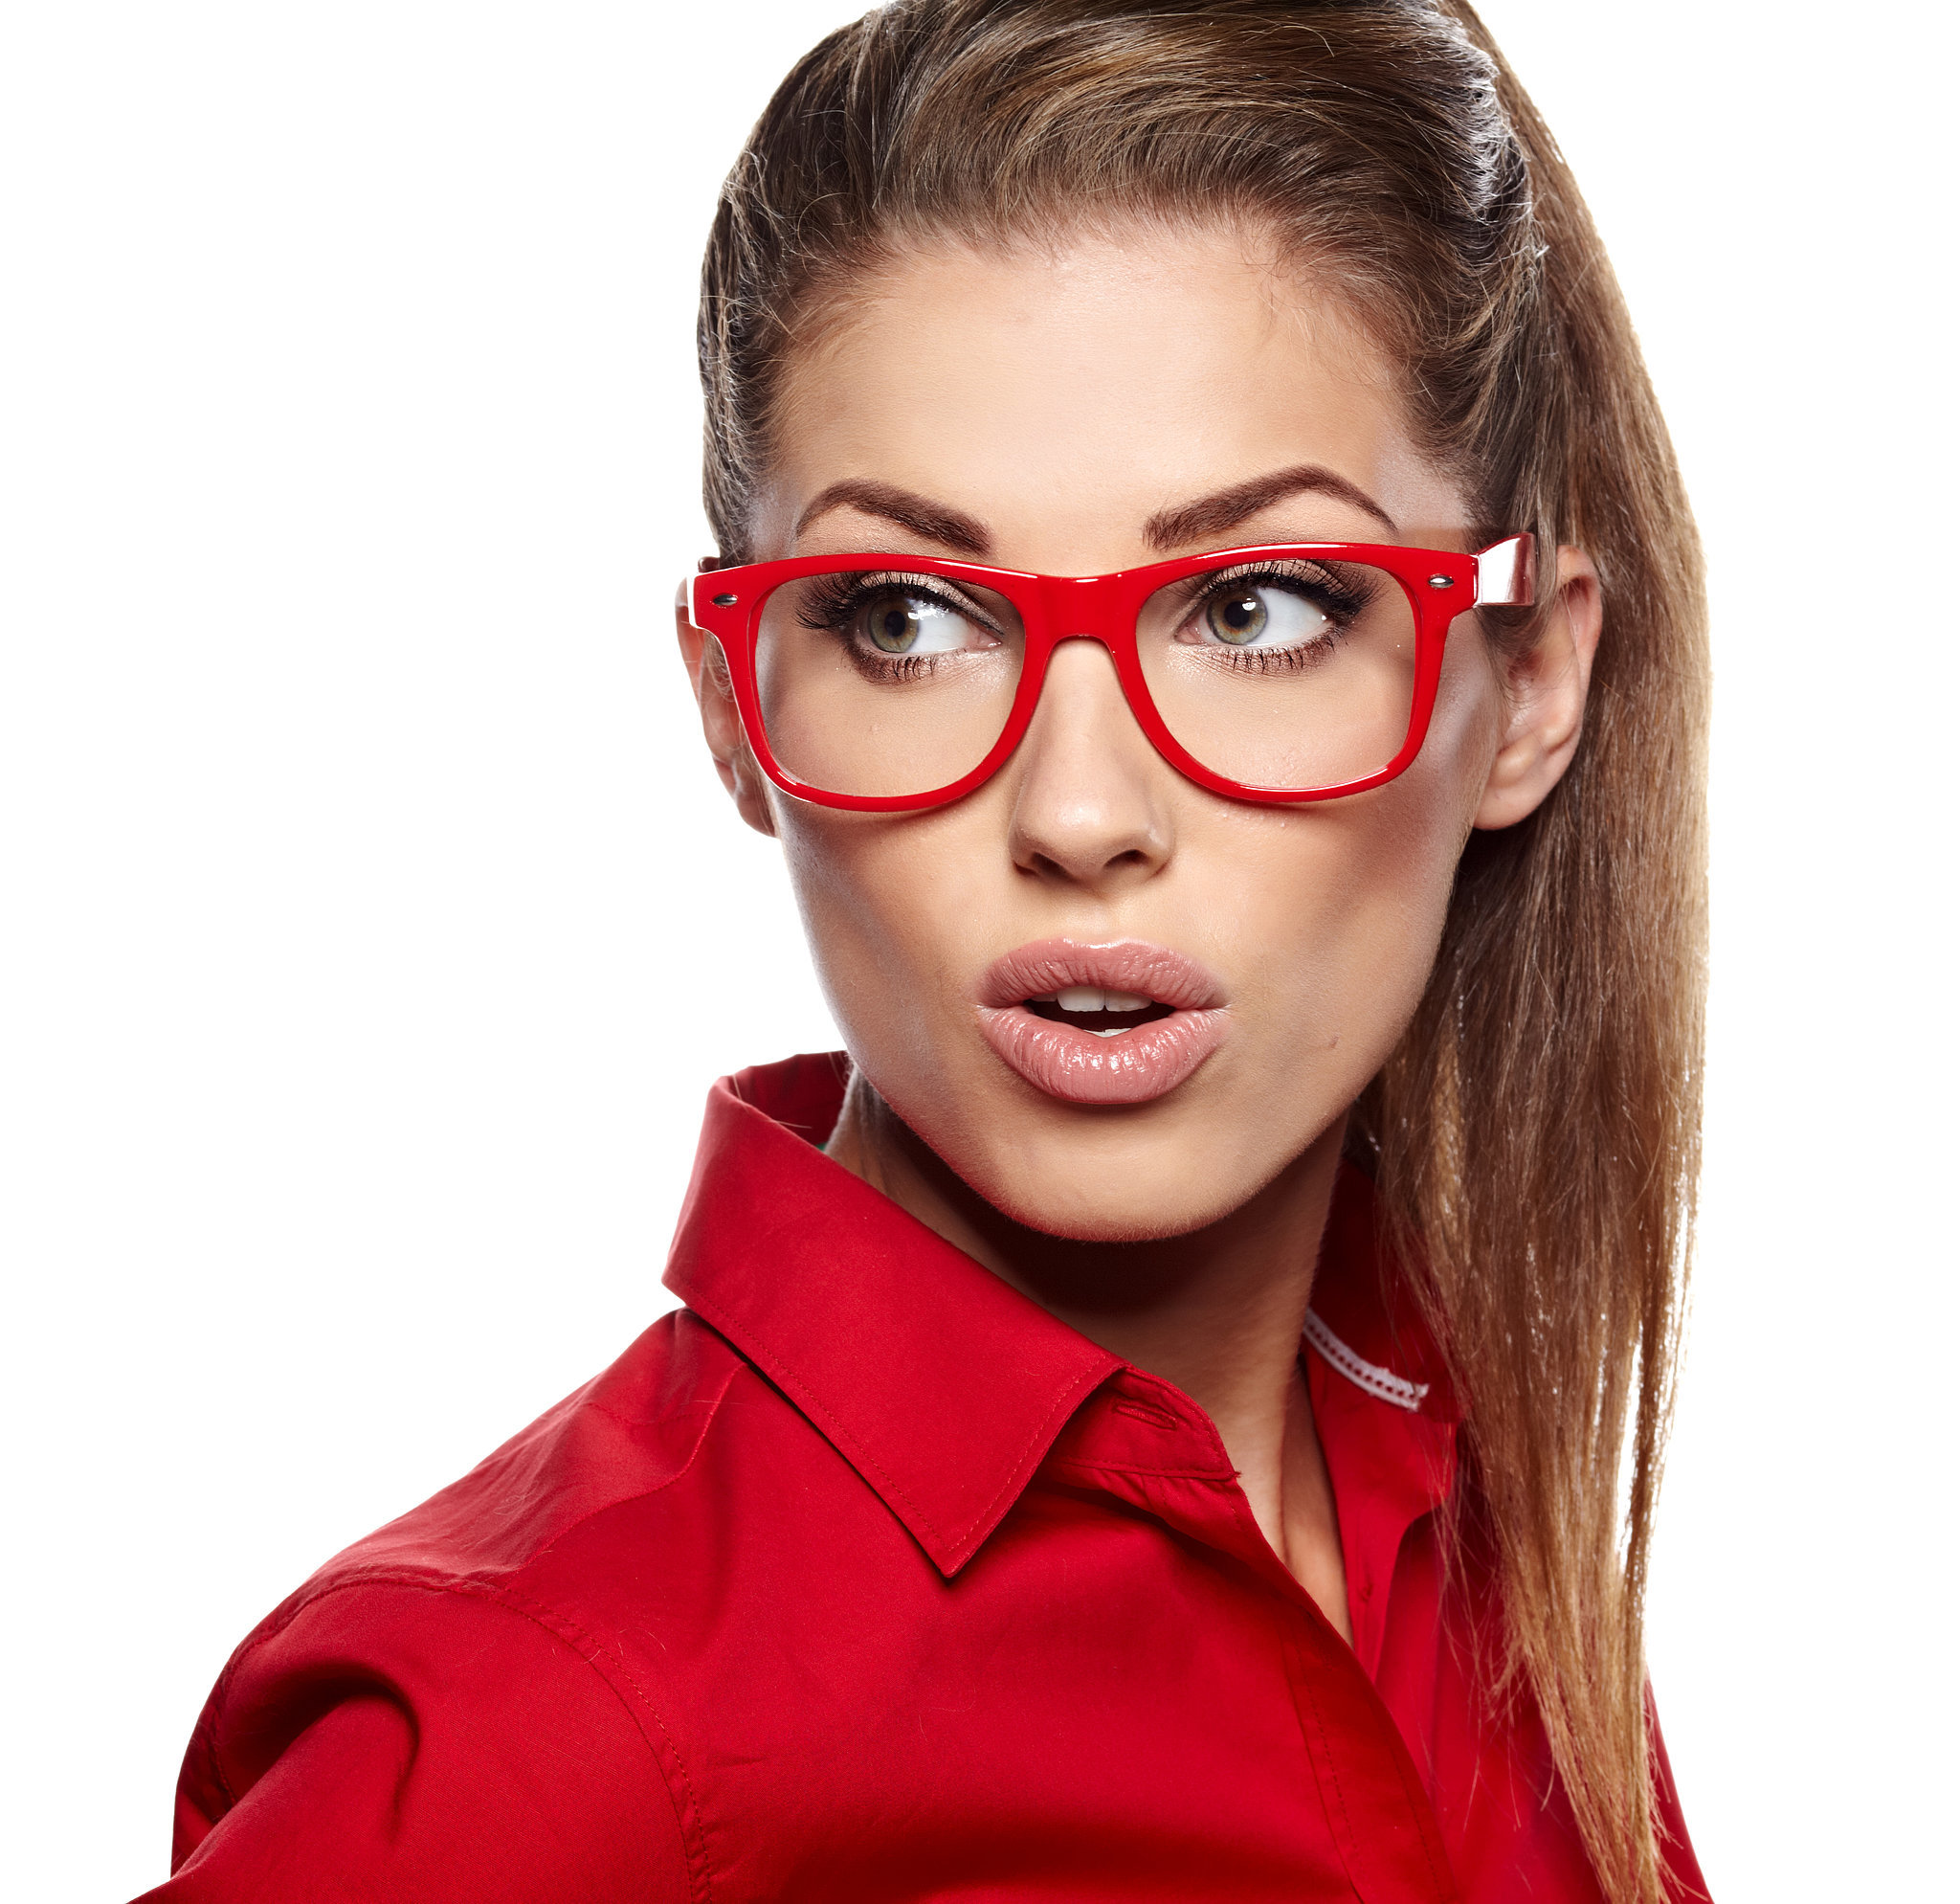 Big Red Frame Glasses : 1000+ images about Eyeglasses on Pinterest